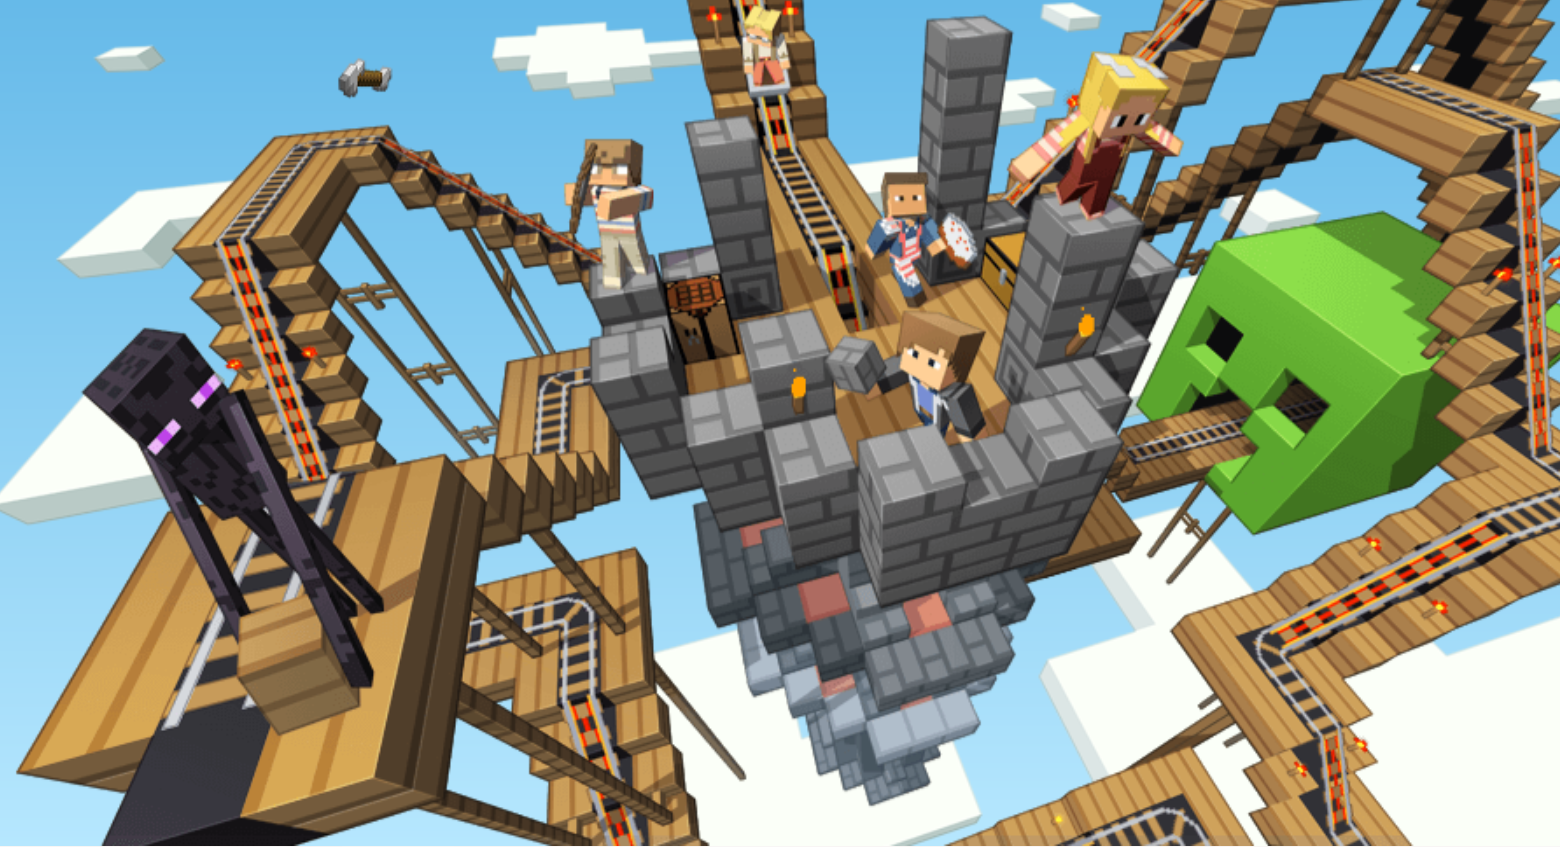 You can now create your own version of Minecraft